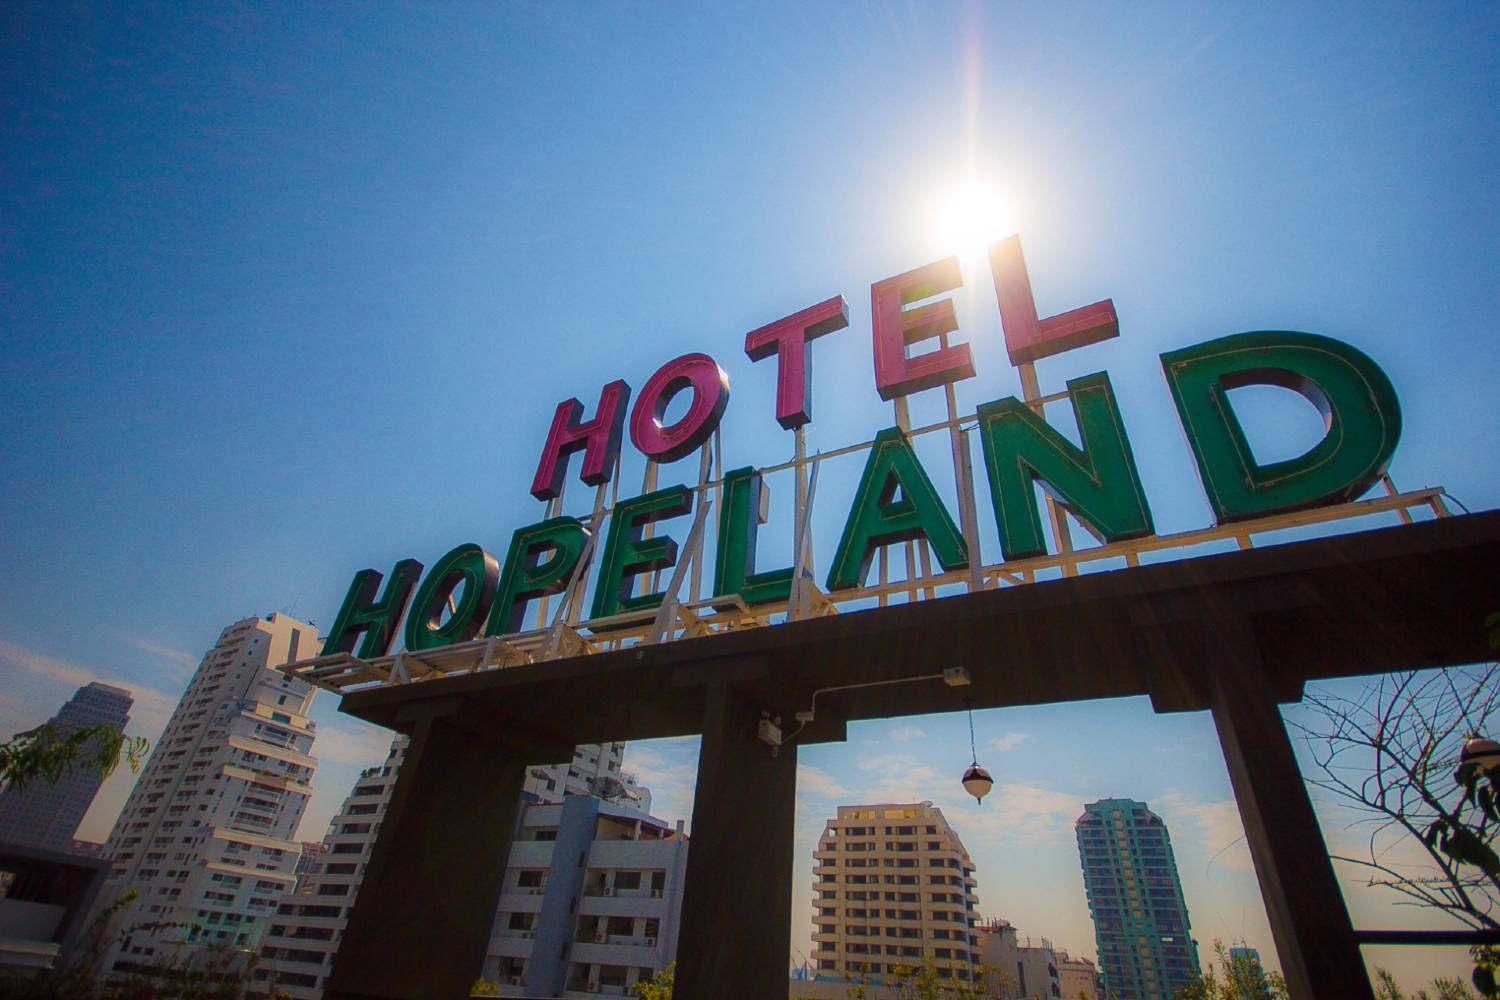 The neon sign on the roof of Hope Land Hotel Sukhumvit 8 in Bangkok, Thailand